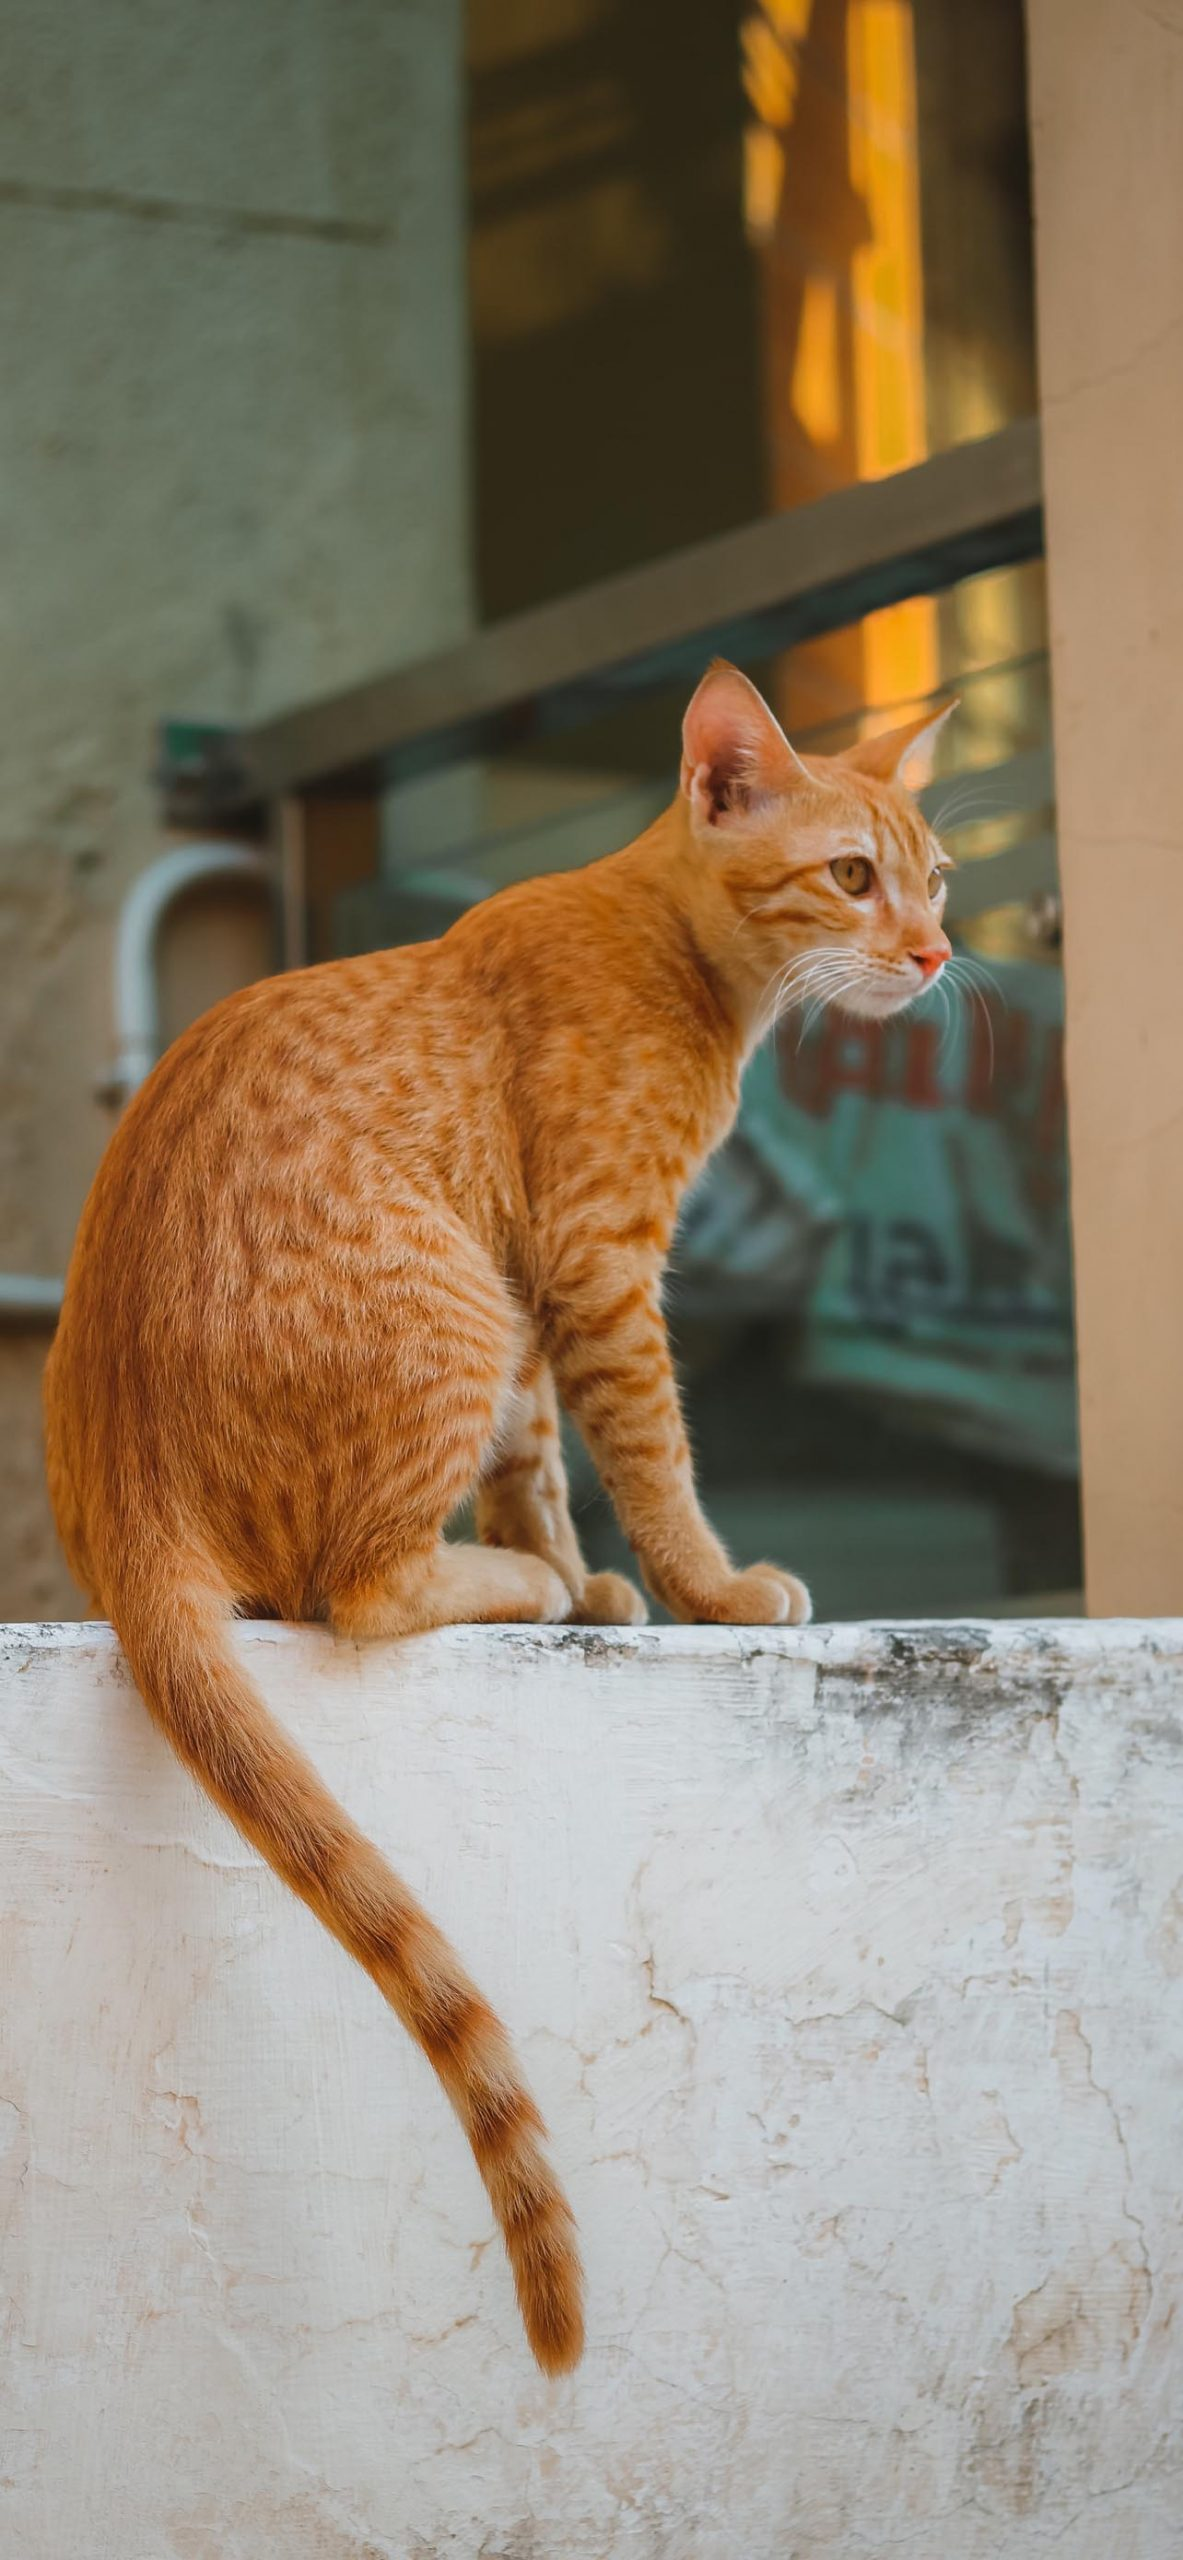 Ginger, Orange Cat Wallpaper